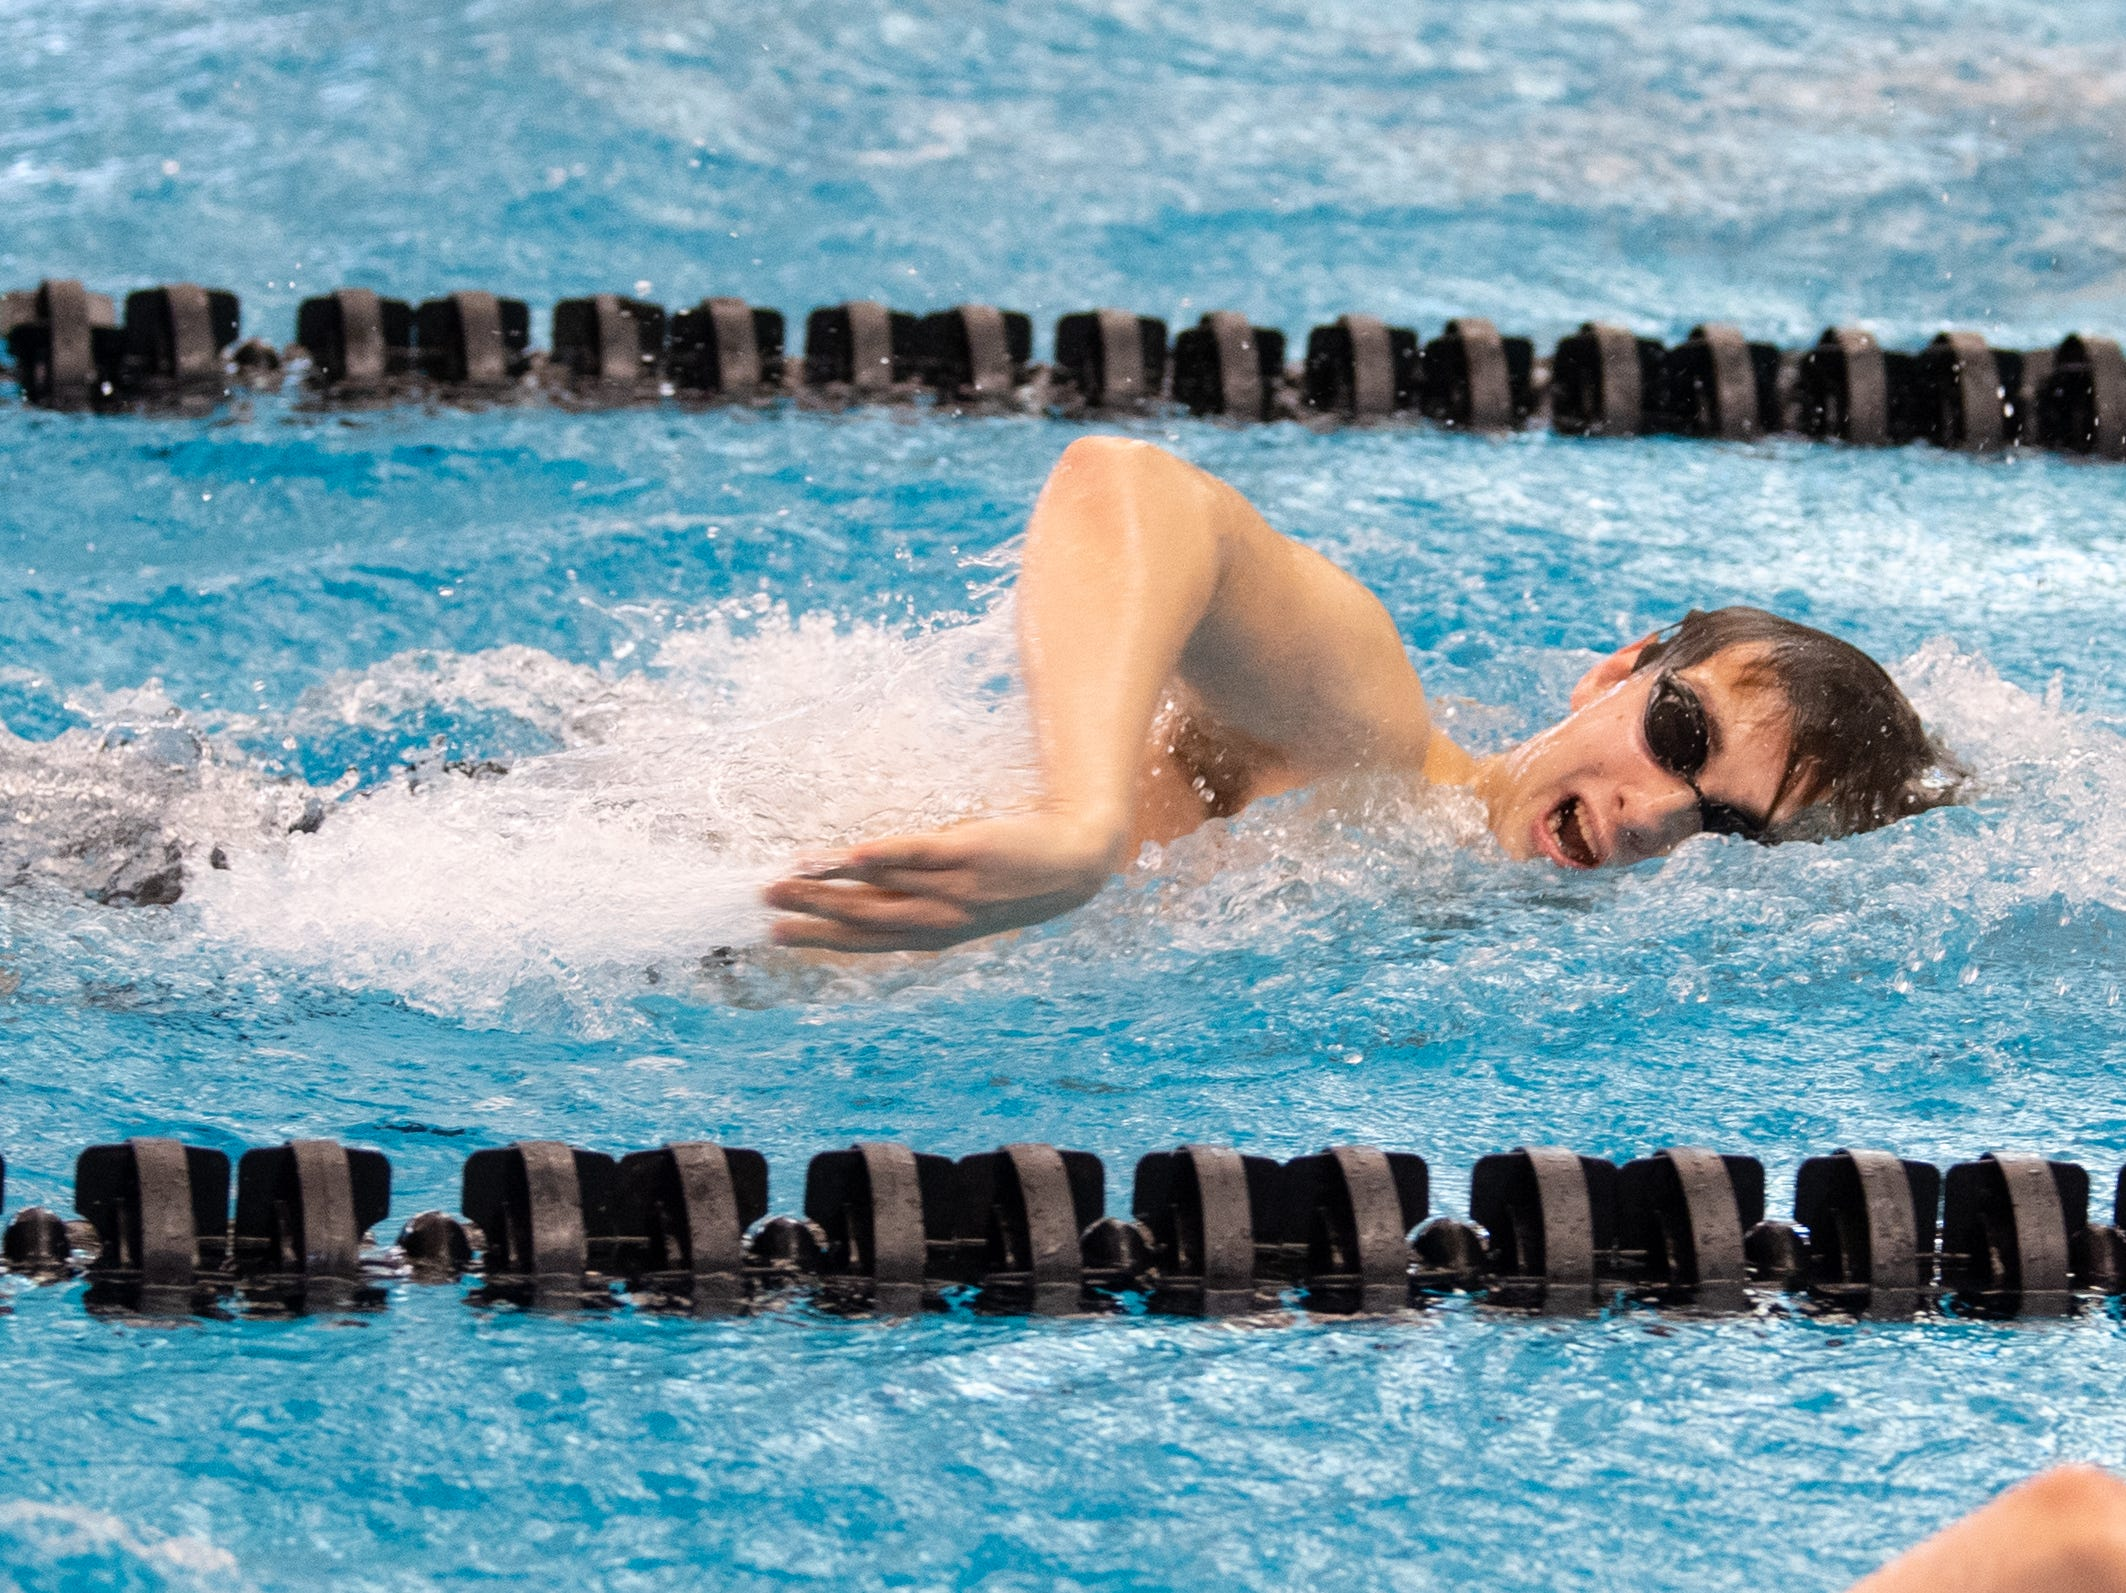 Patrick O'Neal of Central York competes in the Boys 500 Yard Freestyle during the 2019 YAIAA Swimming and Diving Championships at Central York High School, February 9, 2019.